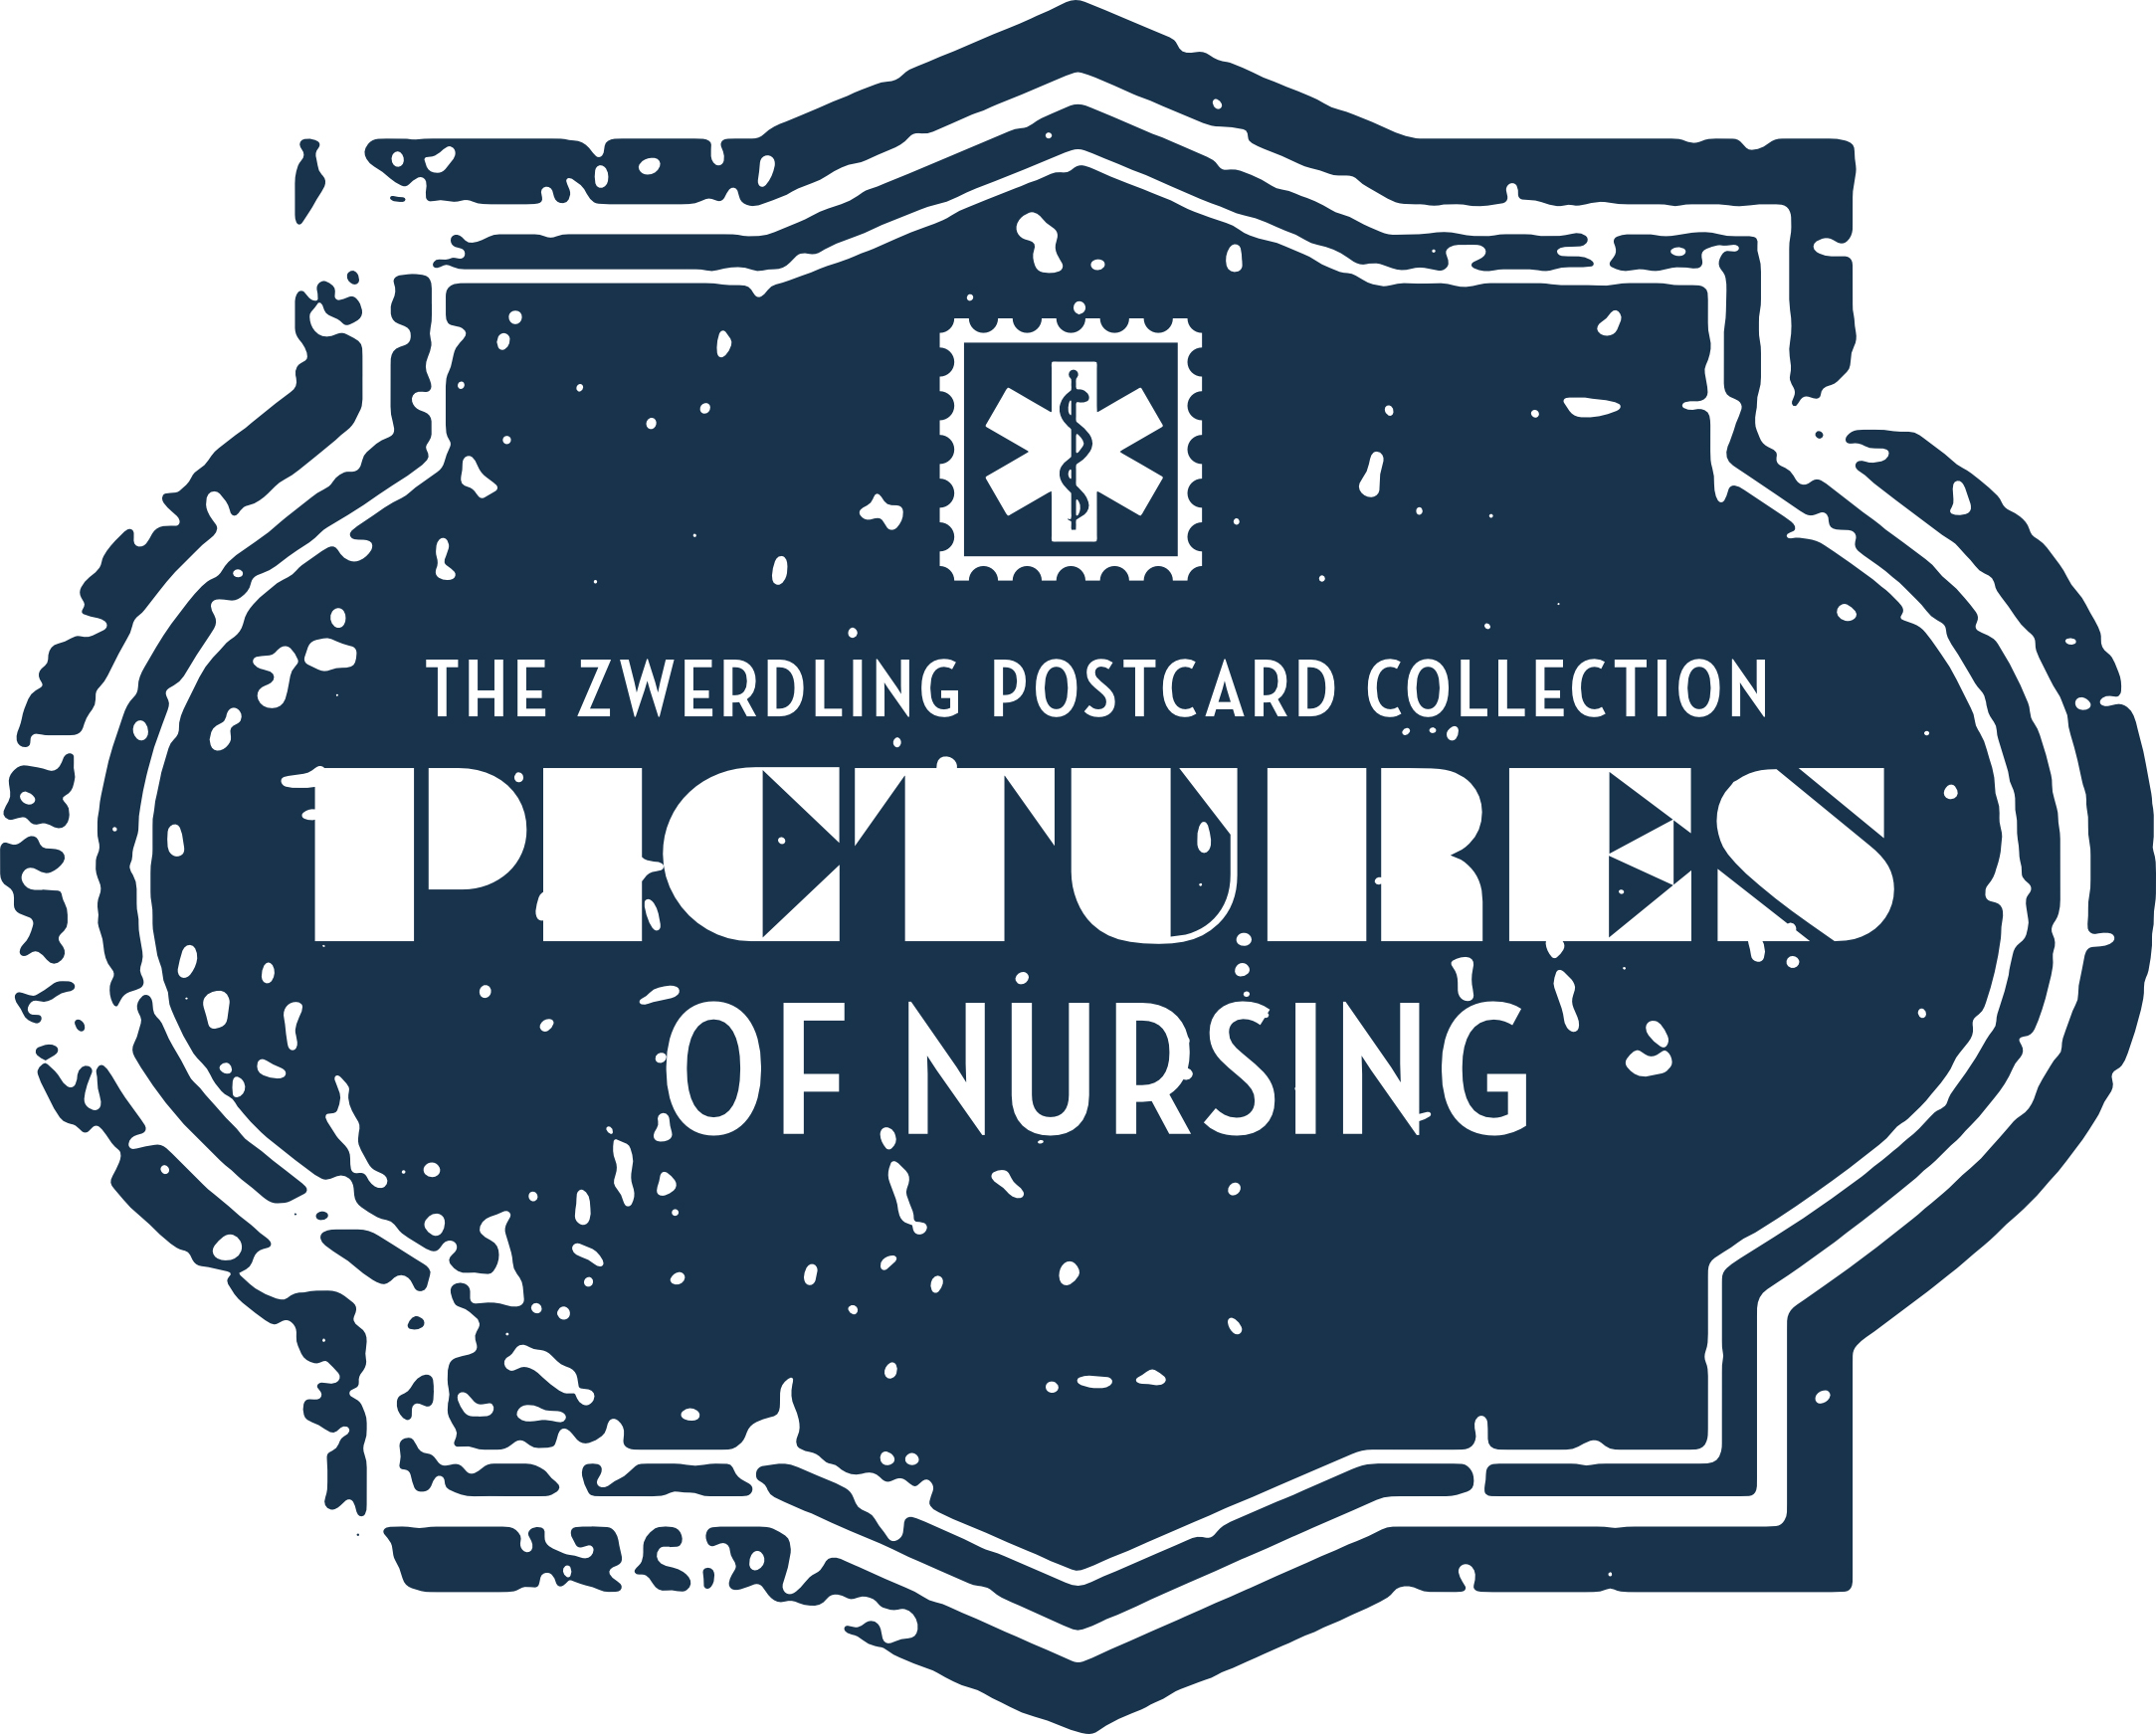 The logo of the Pictures of Nursing: The Zwerdling